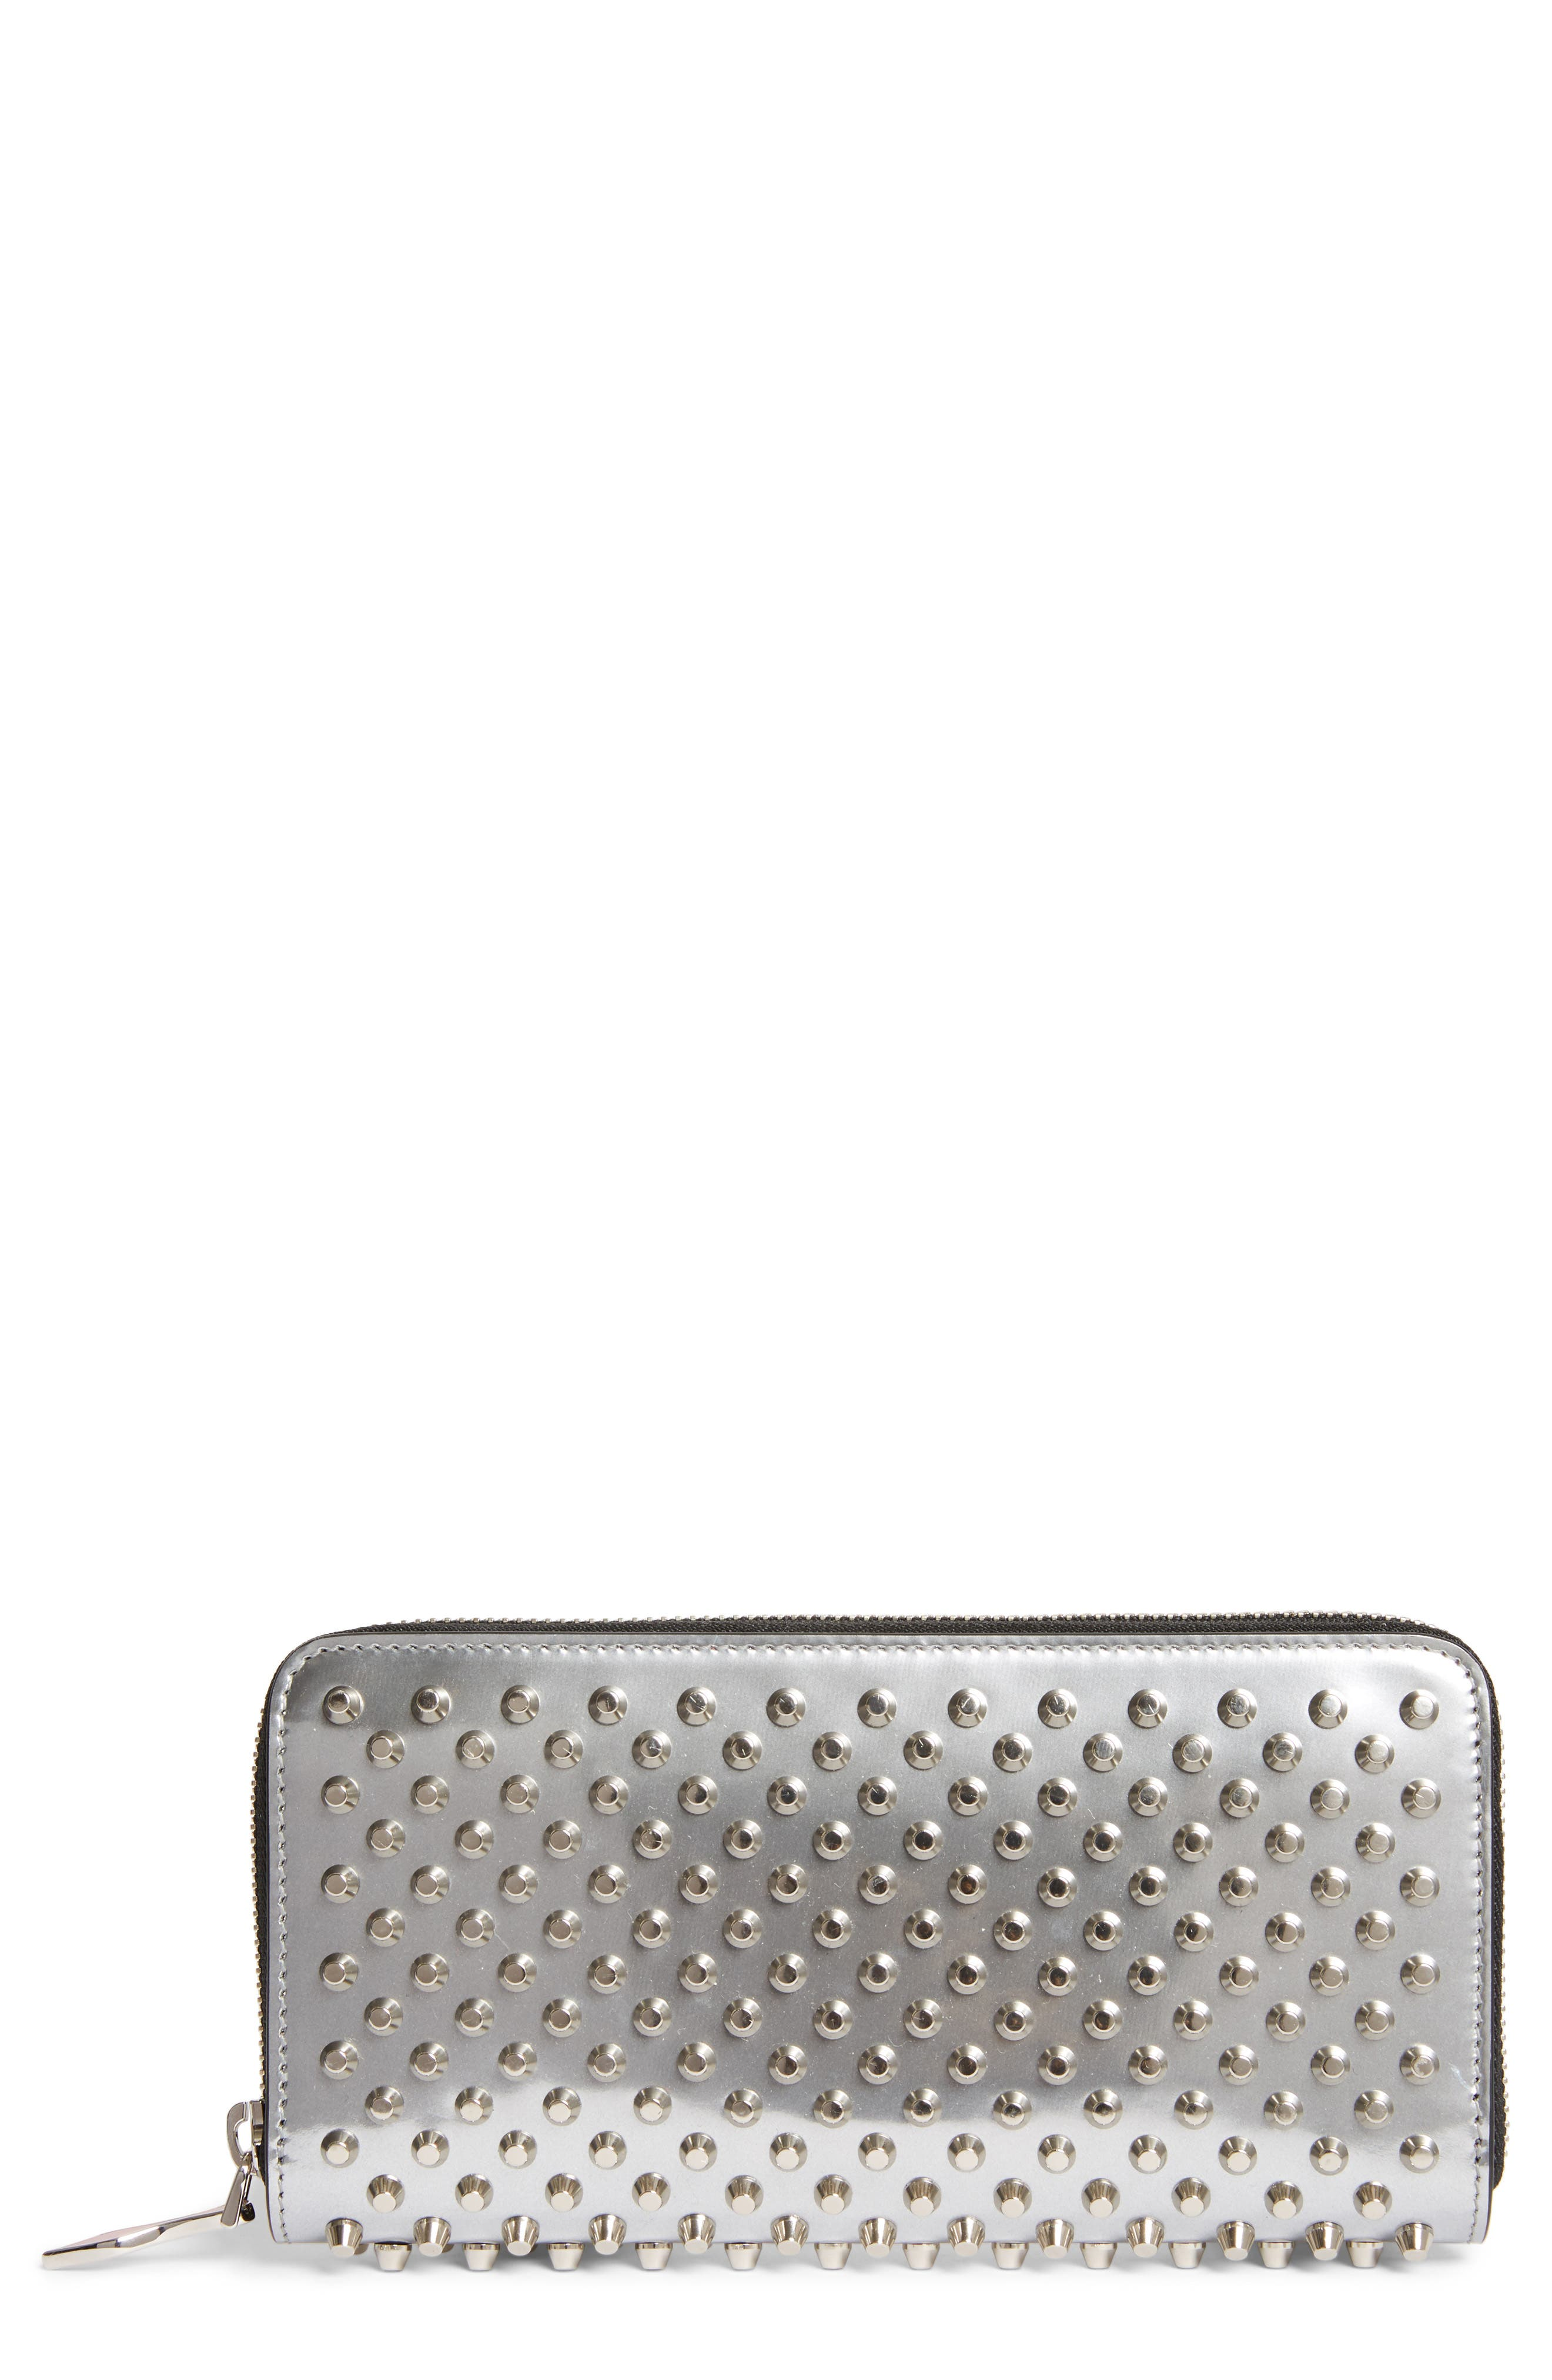 Christian Louboutin Panettone Spiked Metallic Leather Wallet